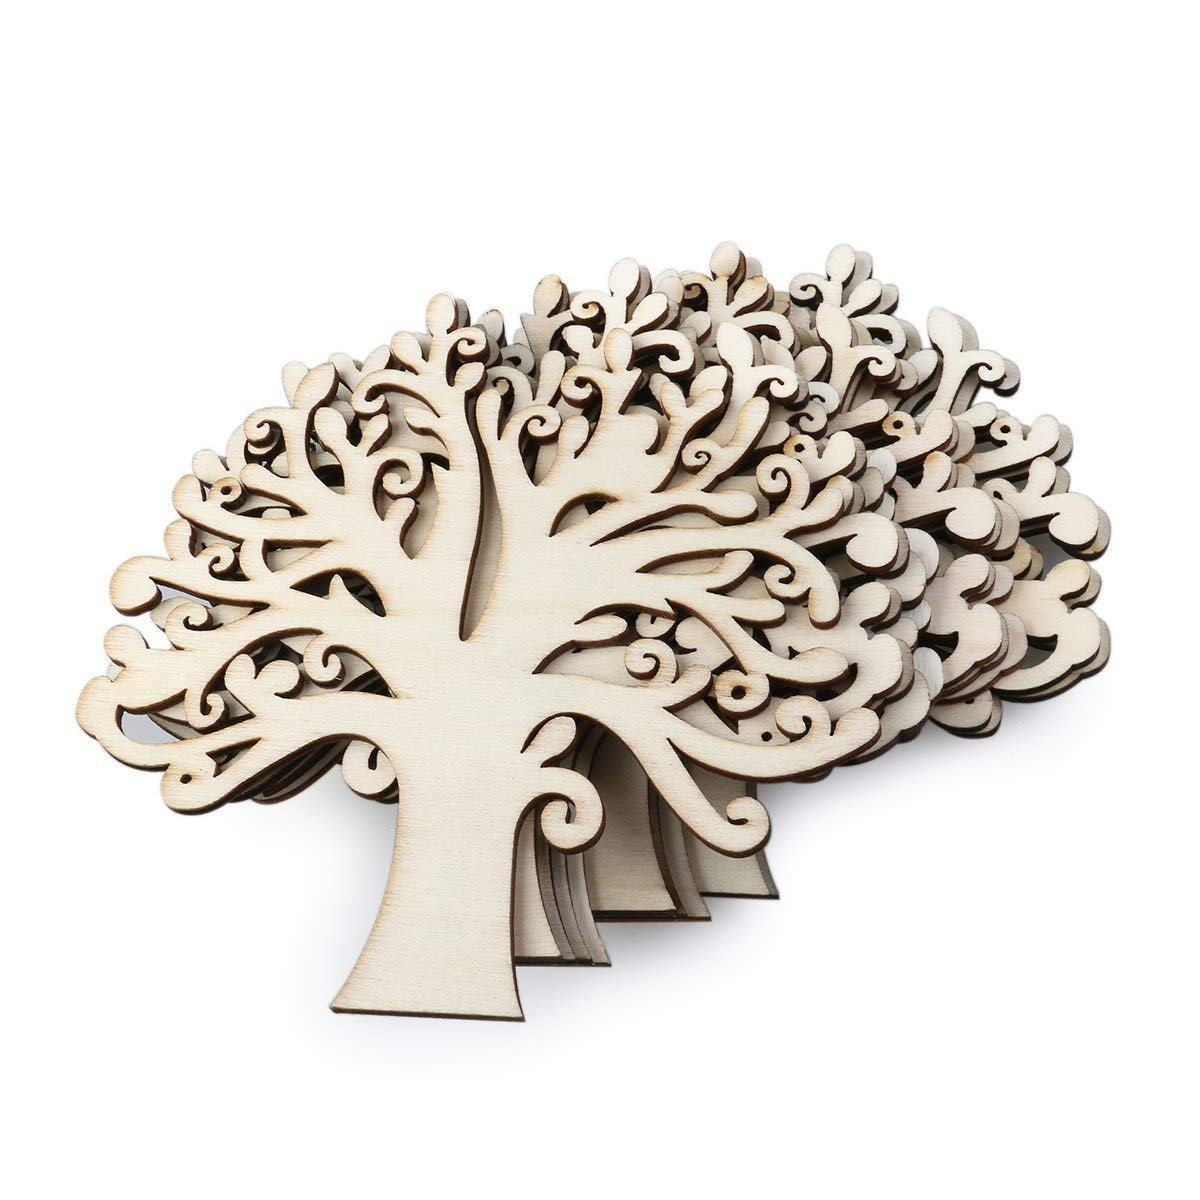 UEETEK 10pcs Family Tree Wood Cutout Blank Wooden Embellishments for DIY Crafts (Wood Color)